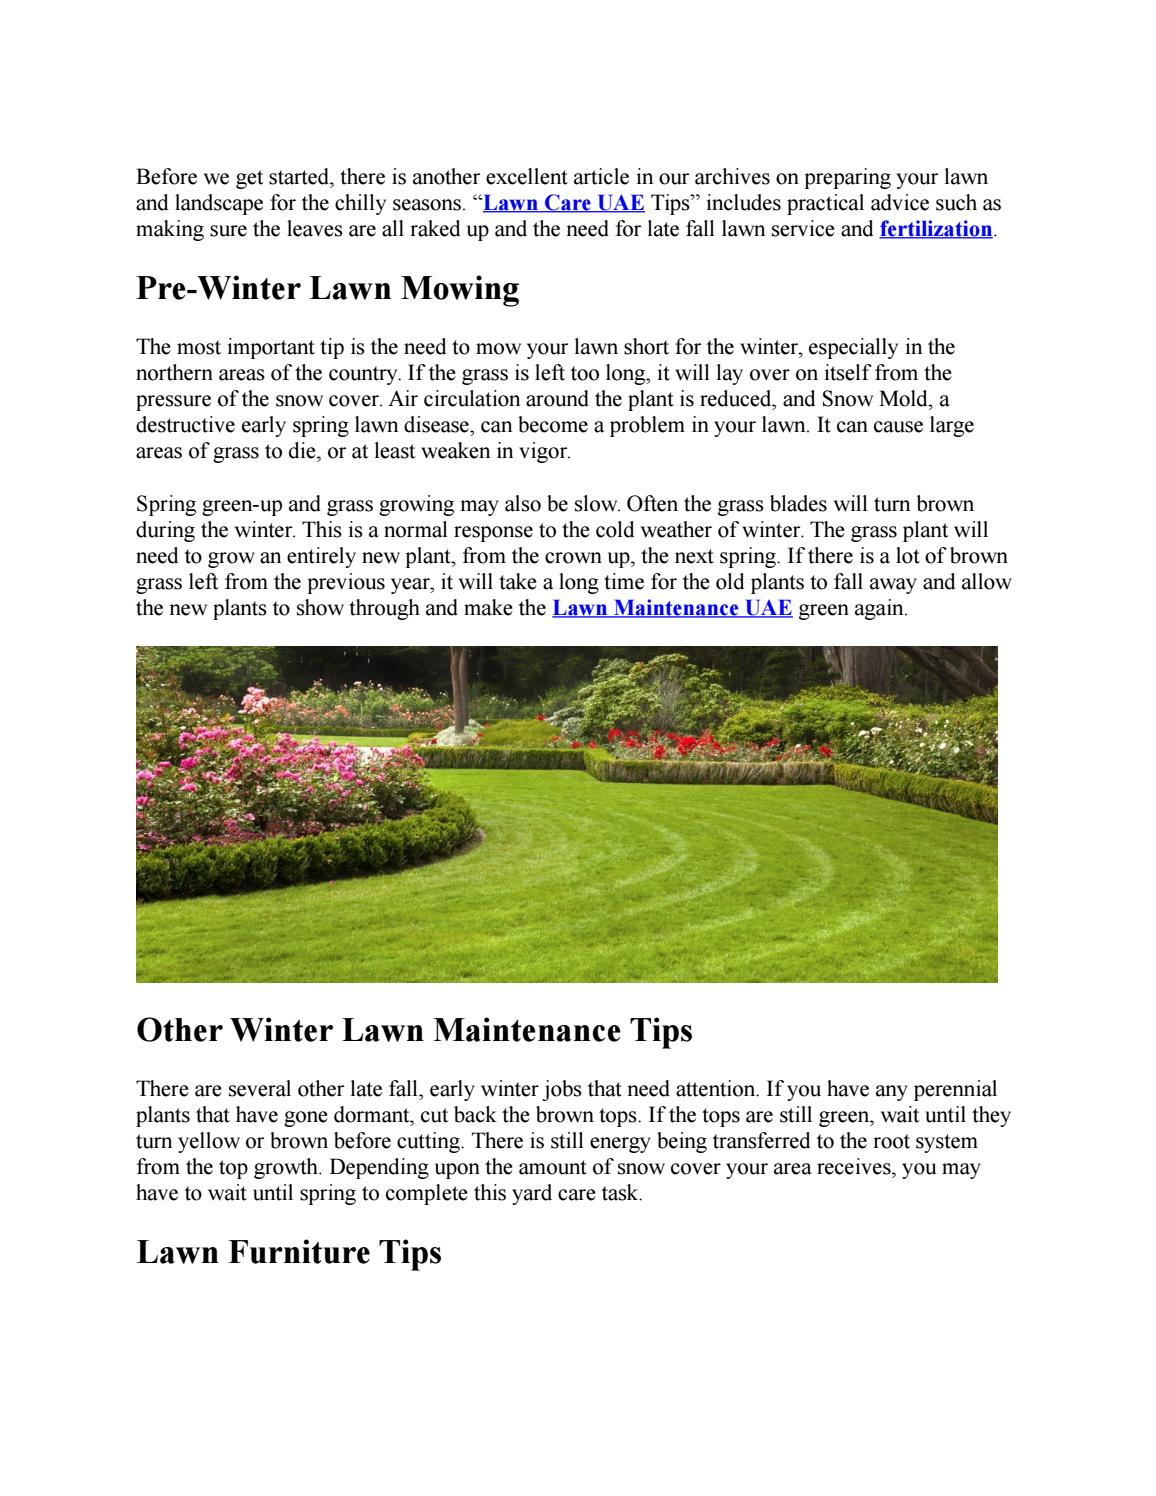 How To Prepare Your Lawn And Landscape